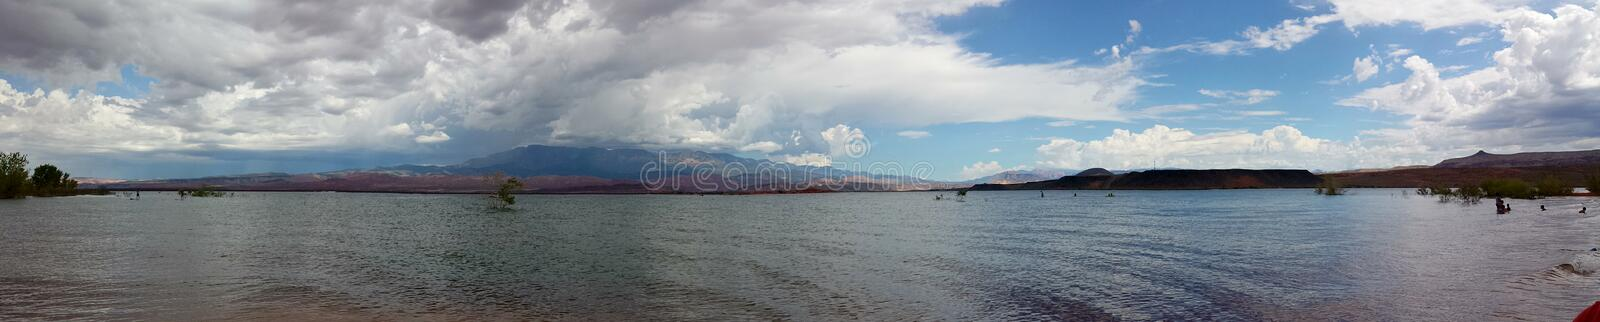 Landscape Panorama of Redrock Sandstone Hills Around a Reservoir with Dramatic Clouds royalty free stock images